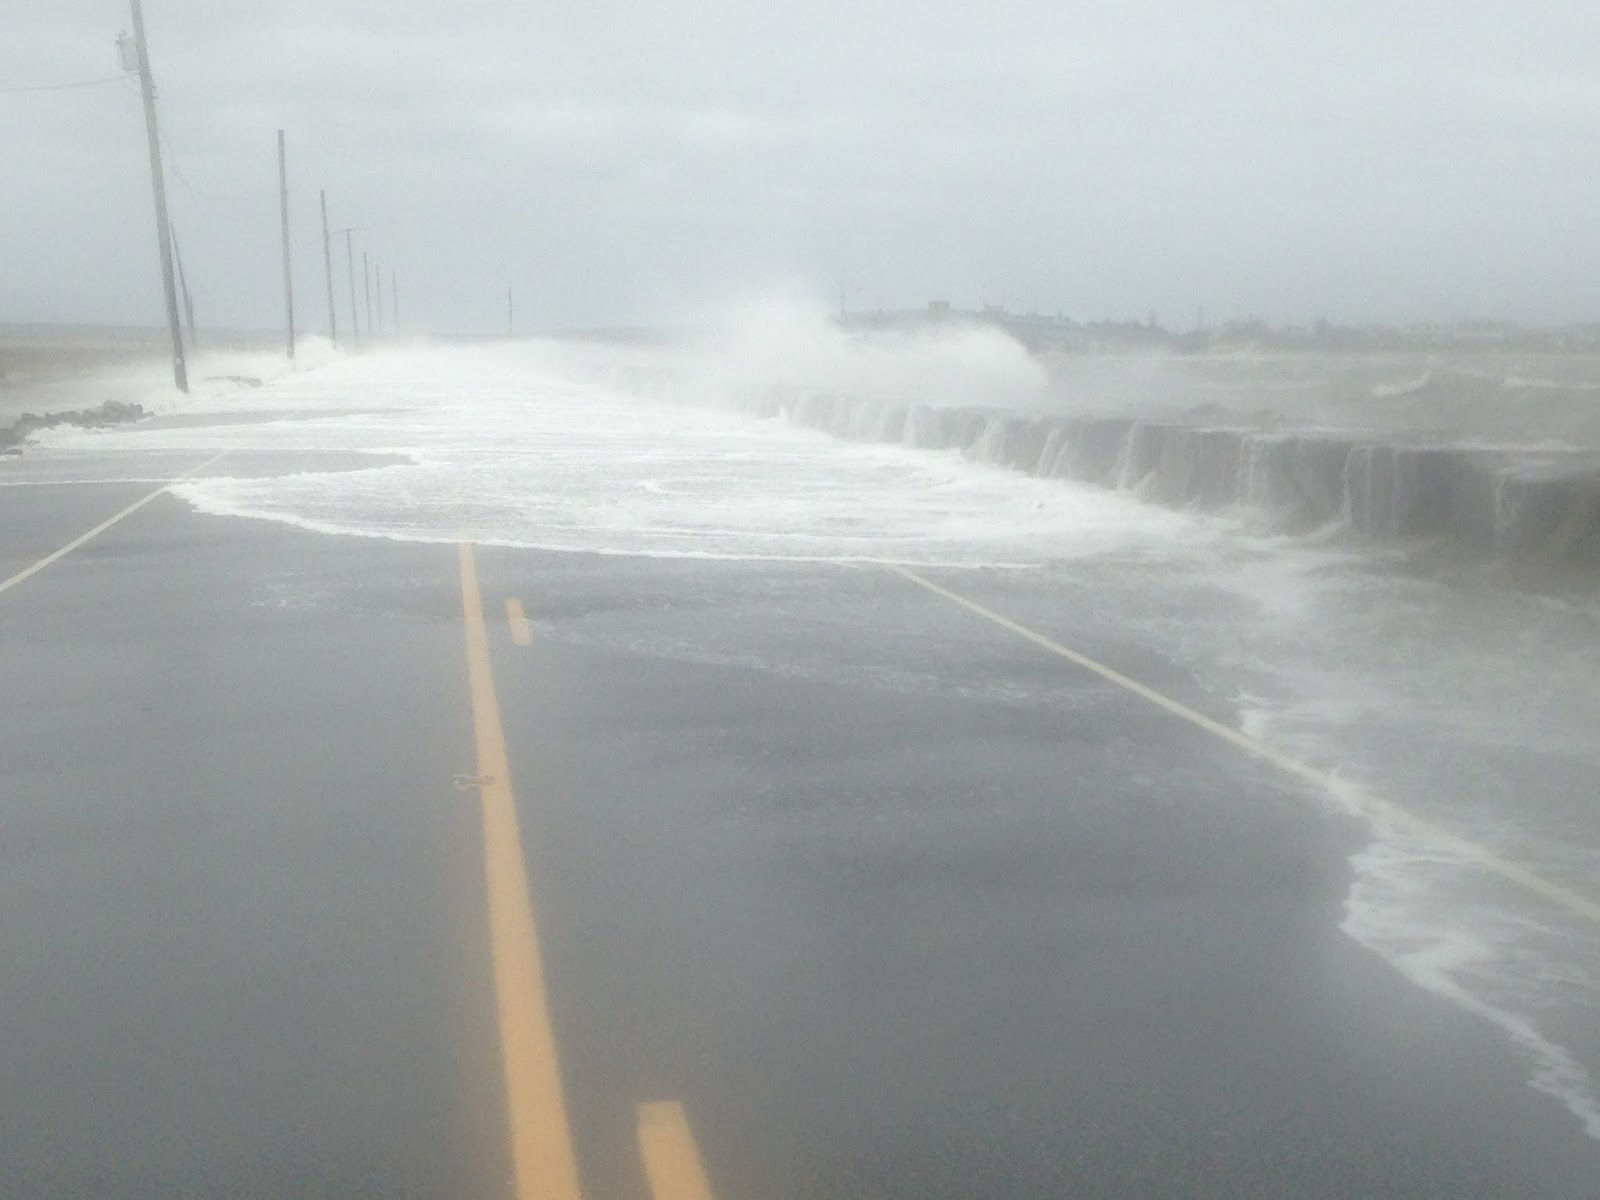 Hurricane hals storm surge blog january 2016 powerful waves crashed over this seawall on the north end of avalon new jersey on the afternoon of sun oct 4 i was trying to drive from avalon to ocean nvjuhfo Choice Image